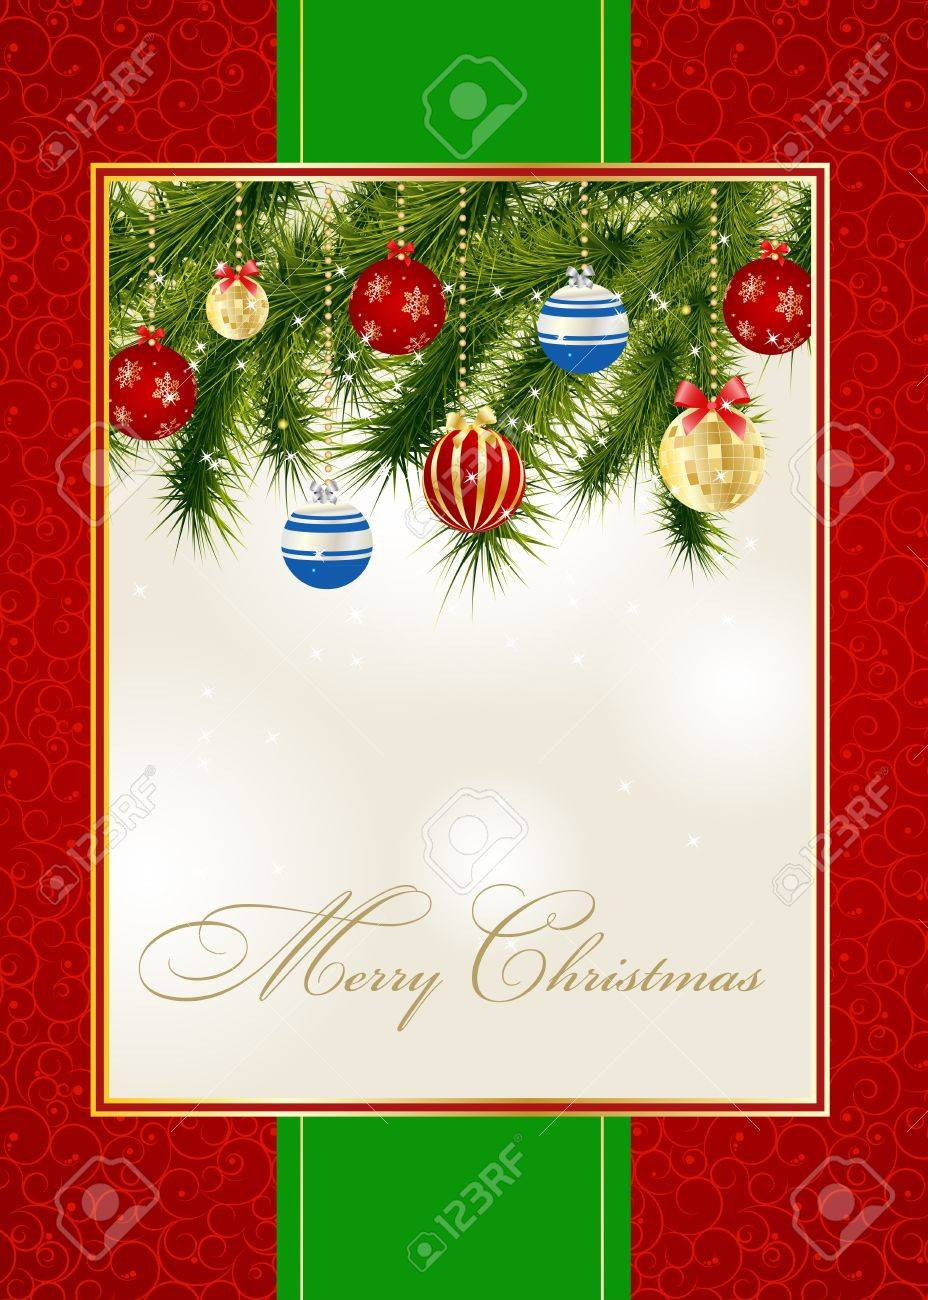 abstract beauty christmas and new year invitation background vector illustration stock vector 14981321